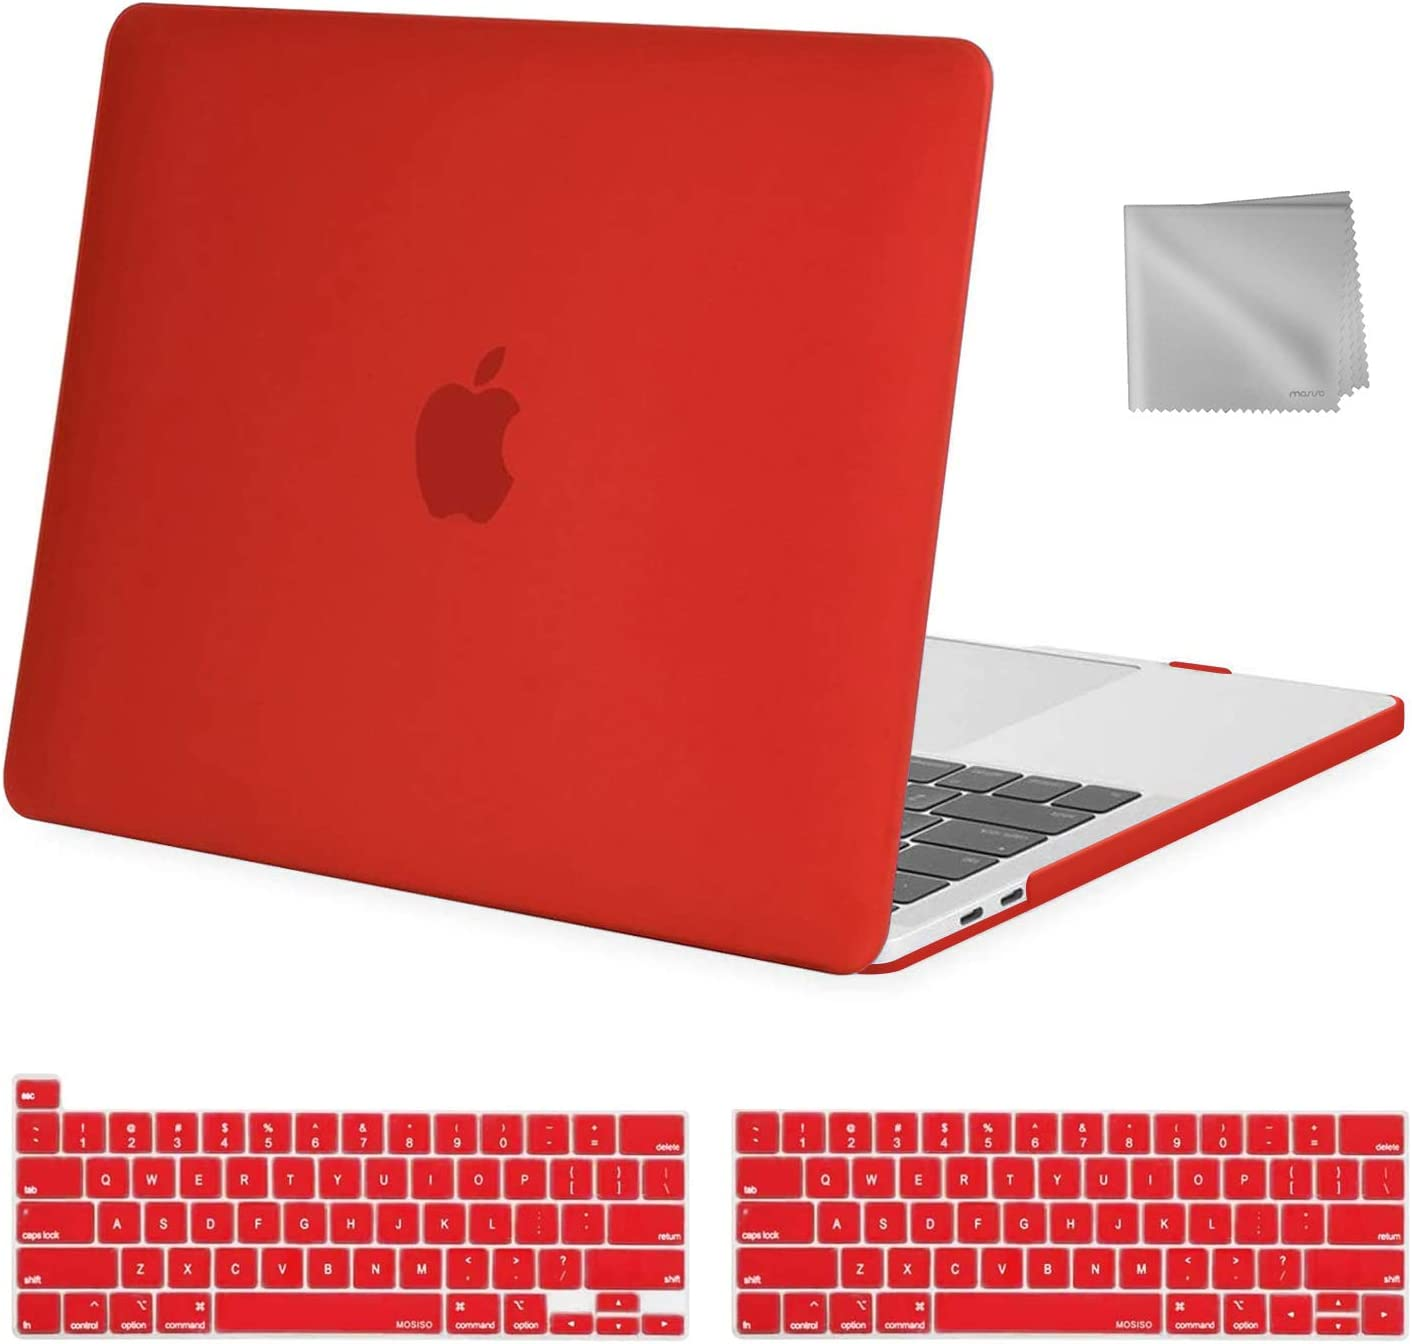 MOSISO MacBook Pro 13 inch Case 2020 2019 2018 2017 2016 Release A2289 A2251 A2159 A1989 A1706 A1708, Plastic Hard Shell&Keyboard Cover&Wipe Cloth Compatible with MacBook Pro 13 inch, Red